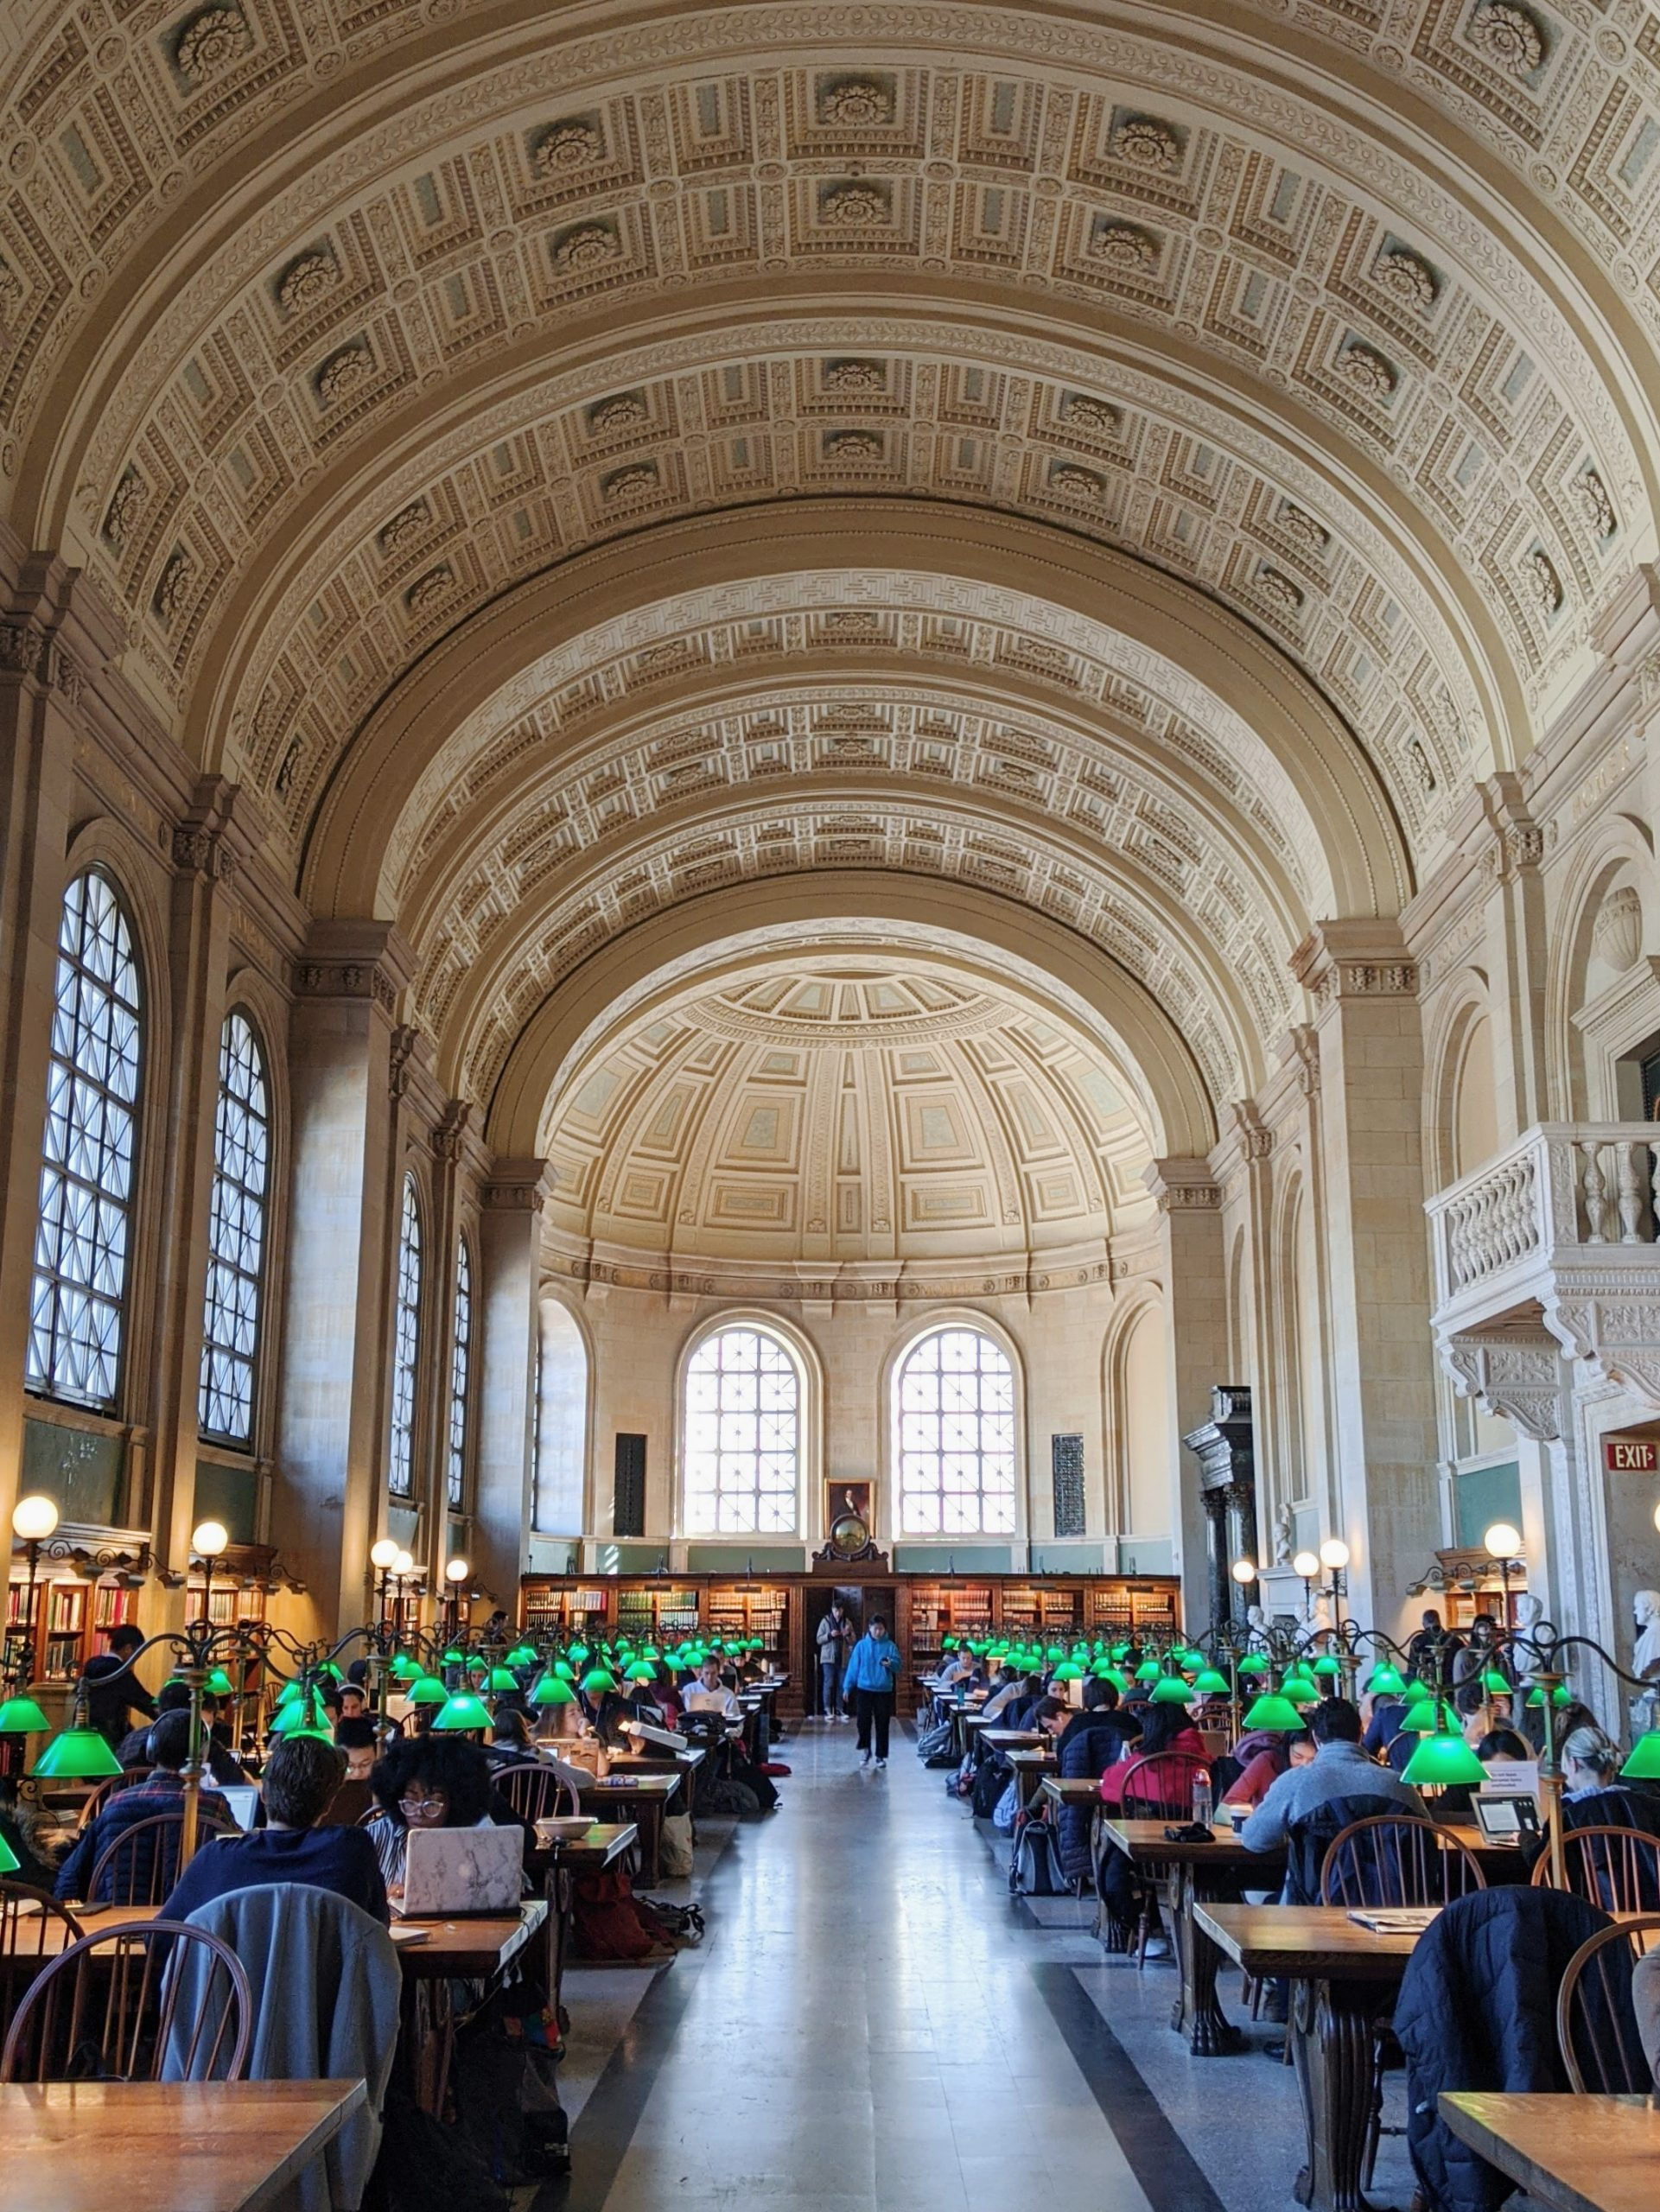 Boston public library main reading room - features high arched ceilings and many desks with the iconic green lamps